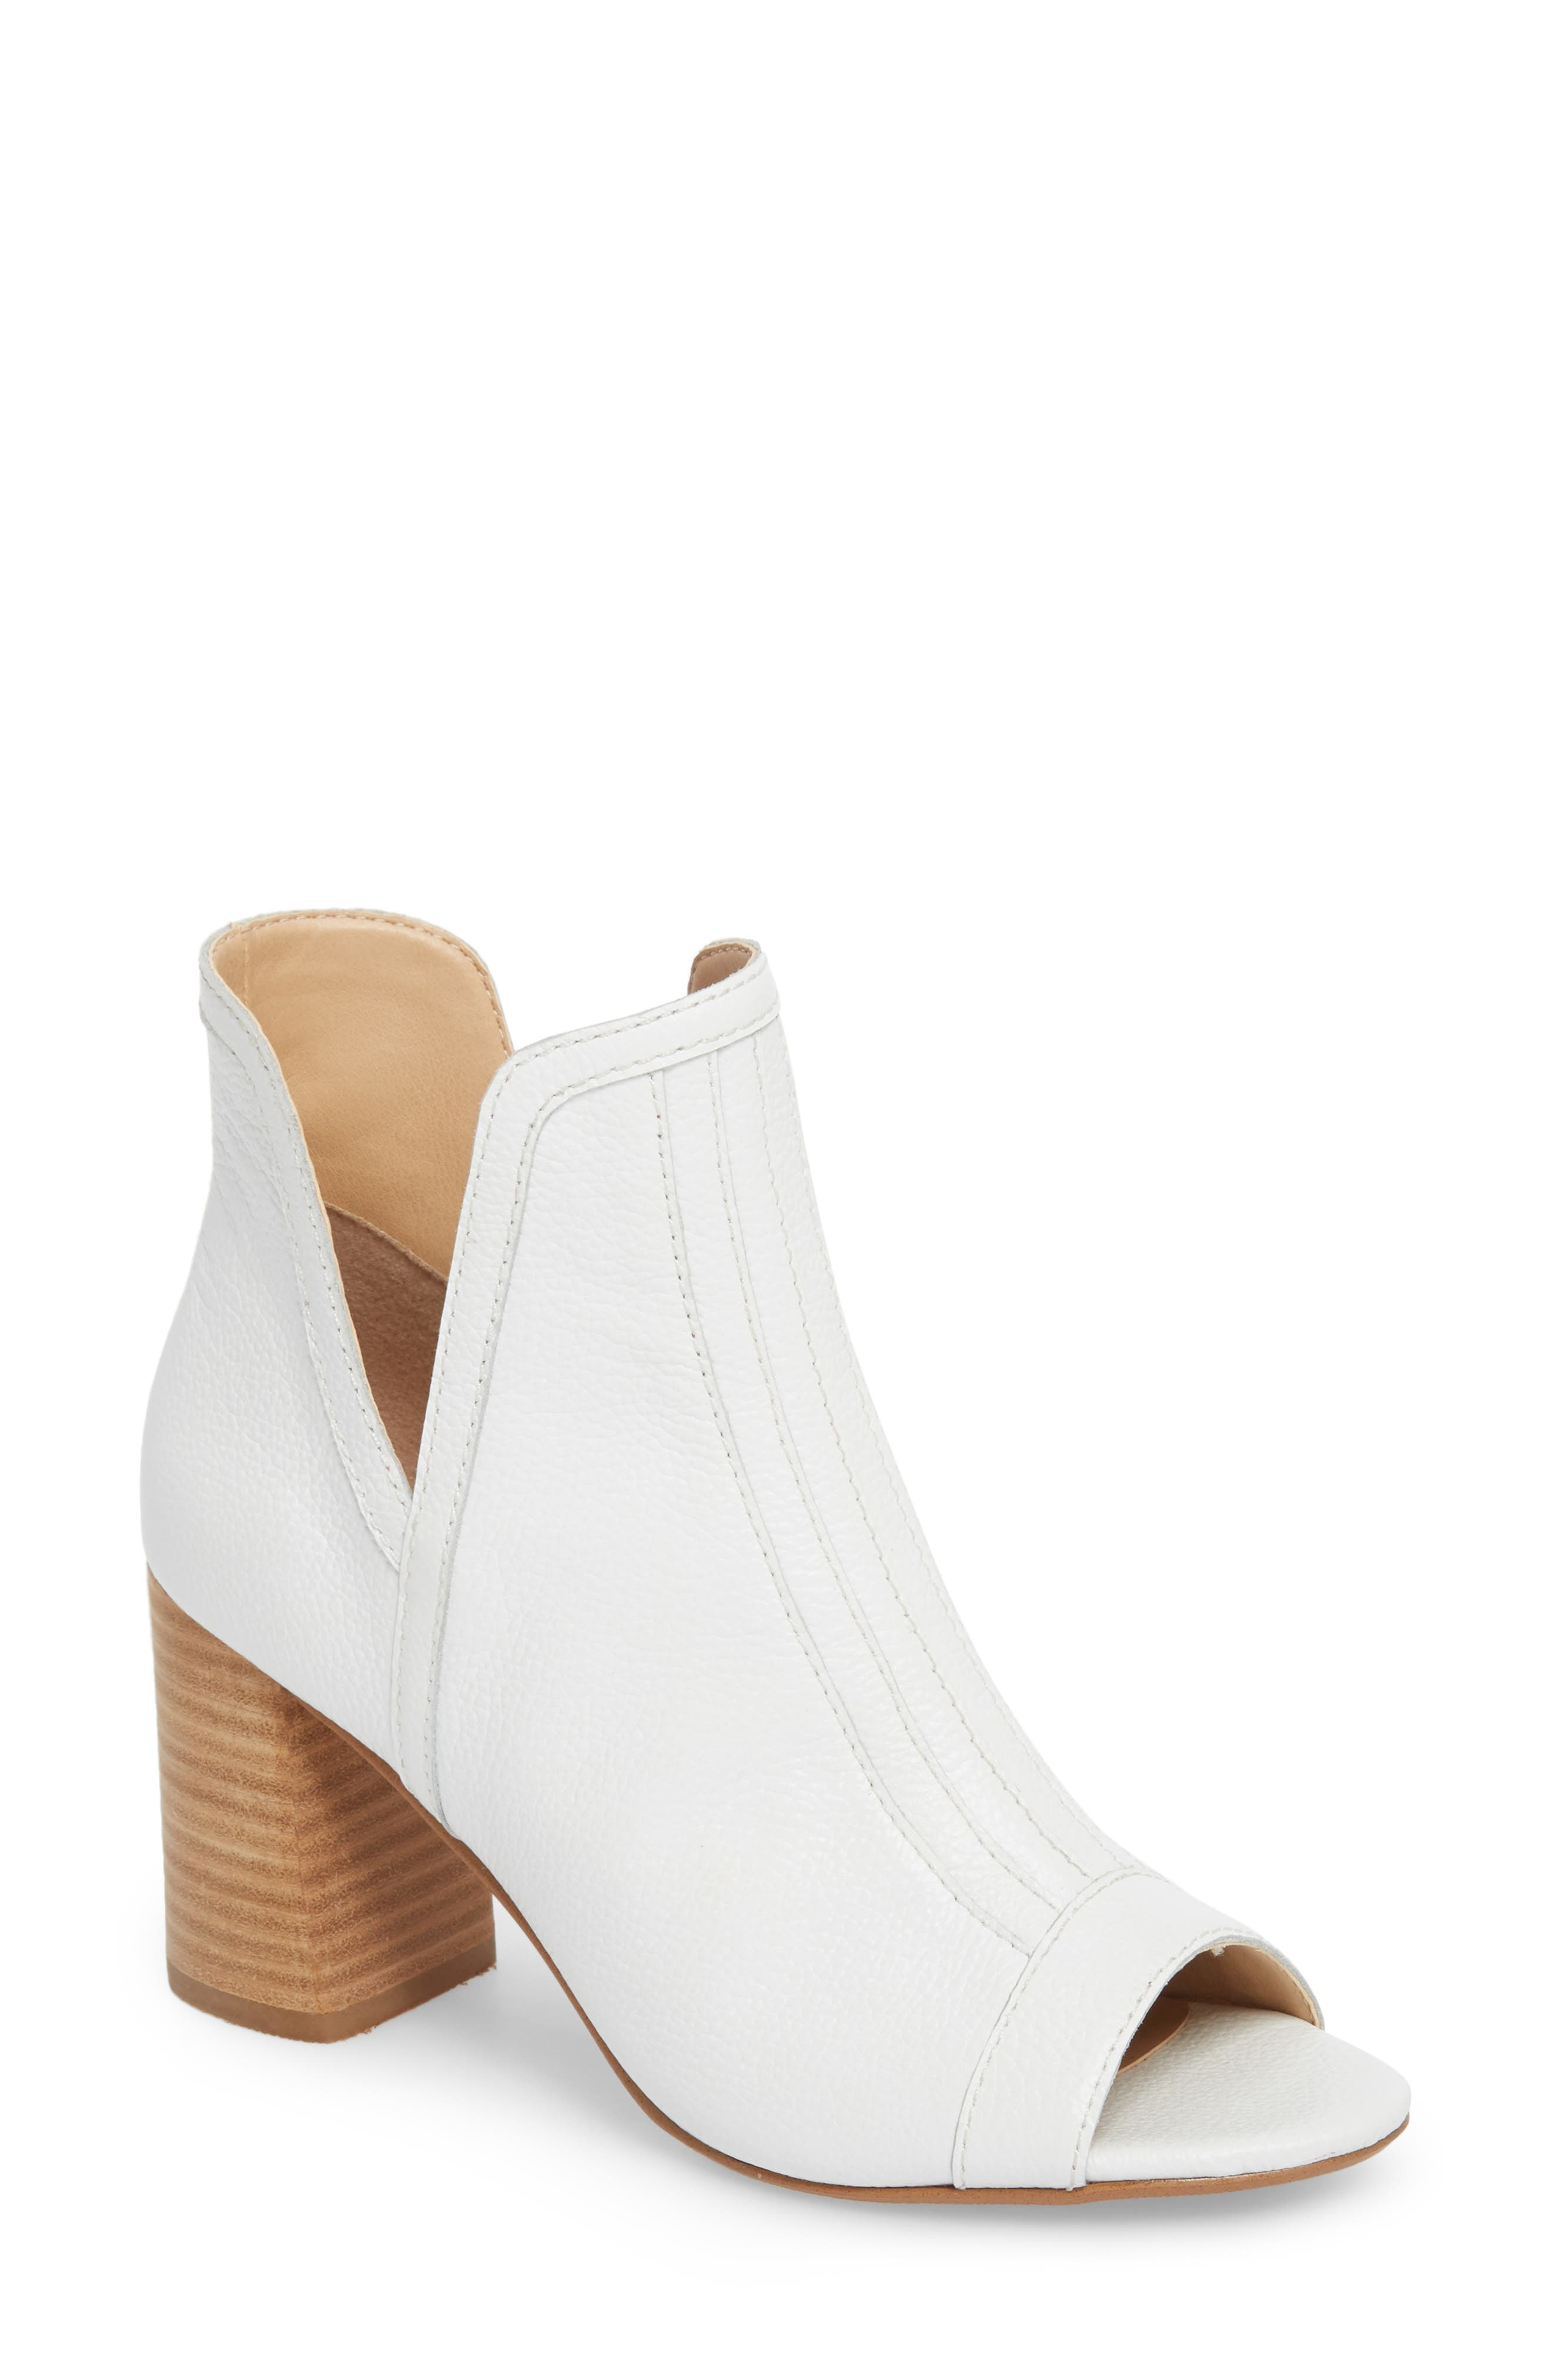 Marla Bootie,                             Main thumbnail 1, color,                             WHITE LEATHER